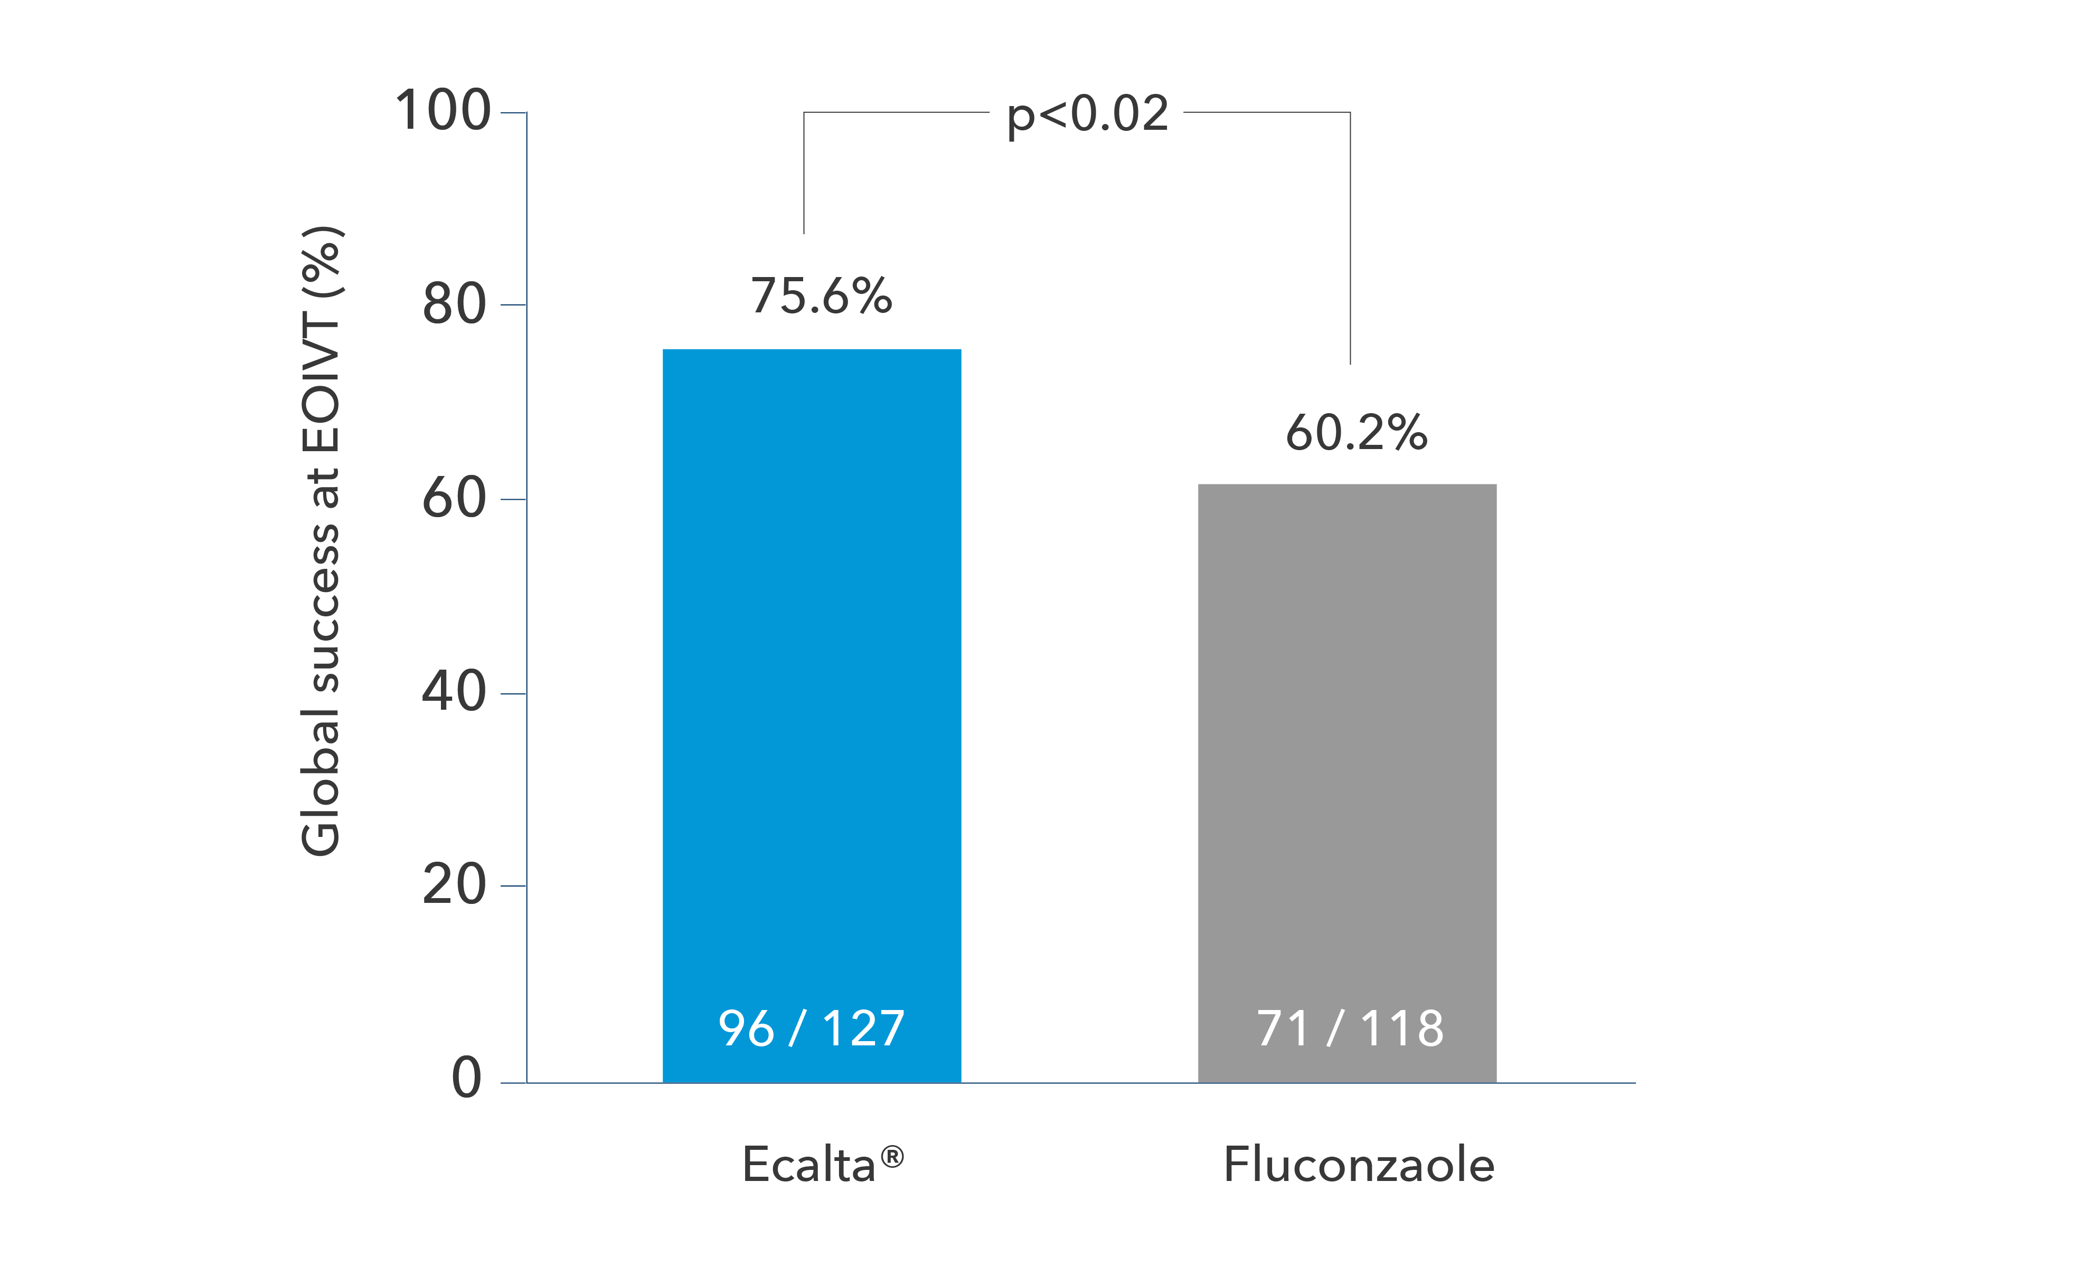 Global success at EOIVT of Ecalta and Fluconzaole